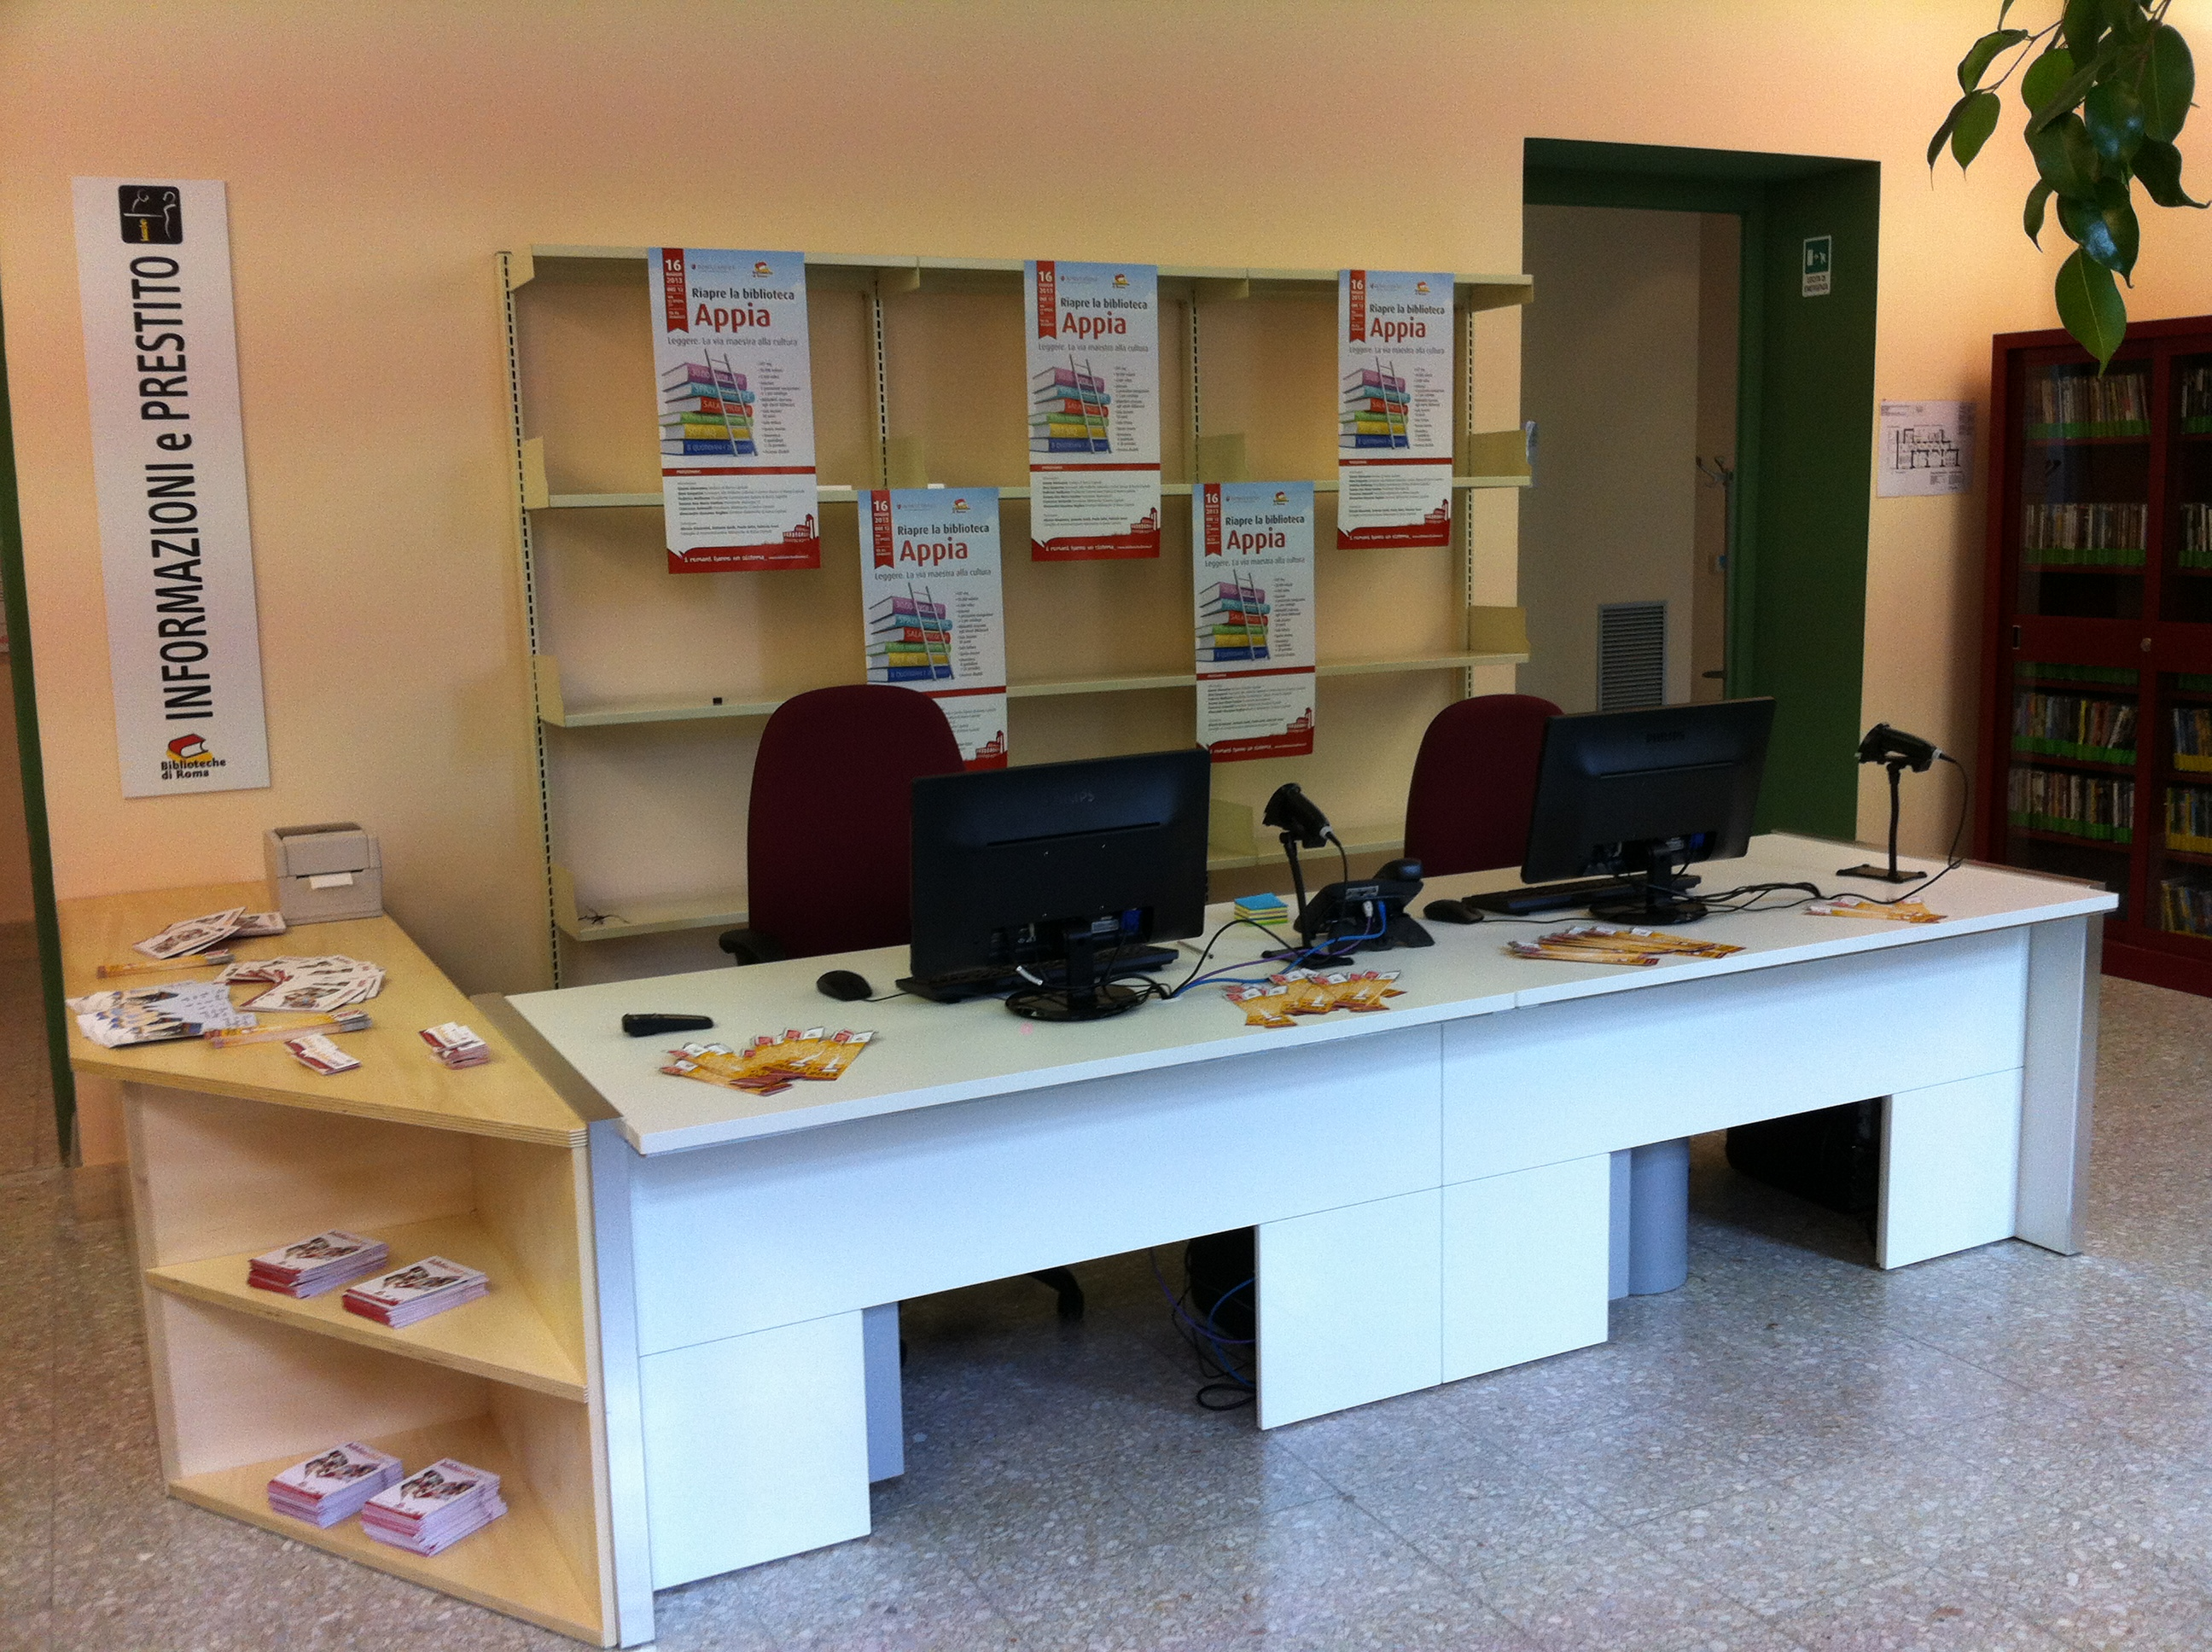 Biblioteca Appia - Front Office